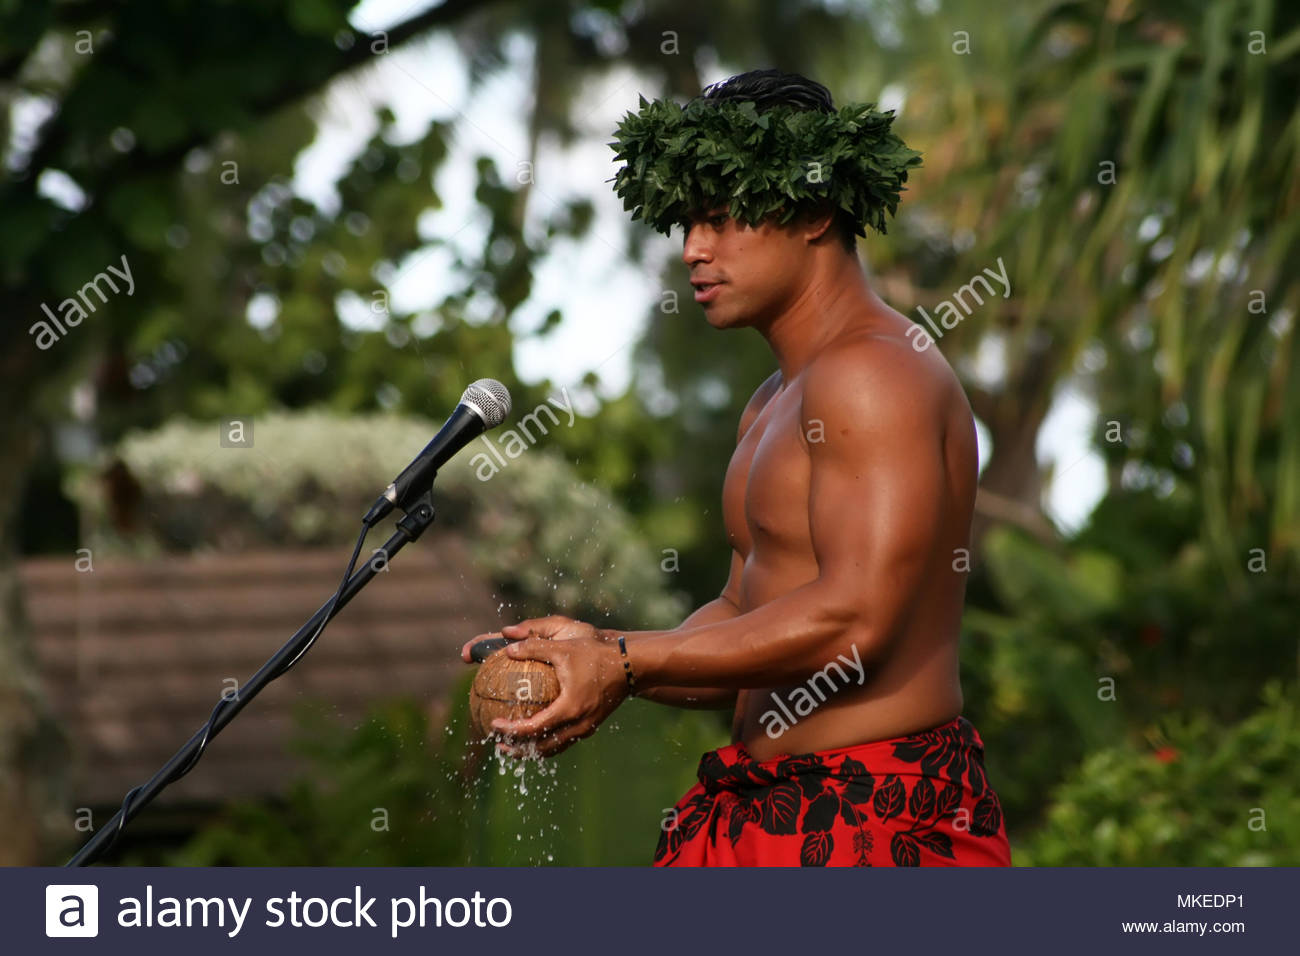 Polynesian man demonstrating how to open up a coconut with a rock. - Stock Image